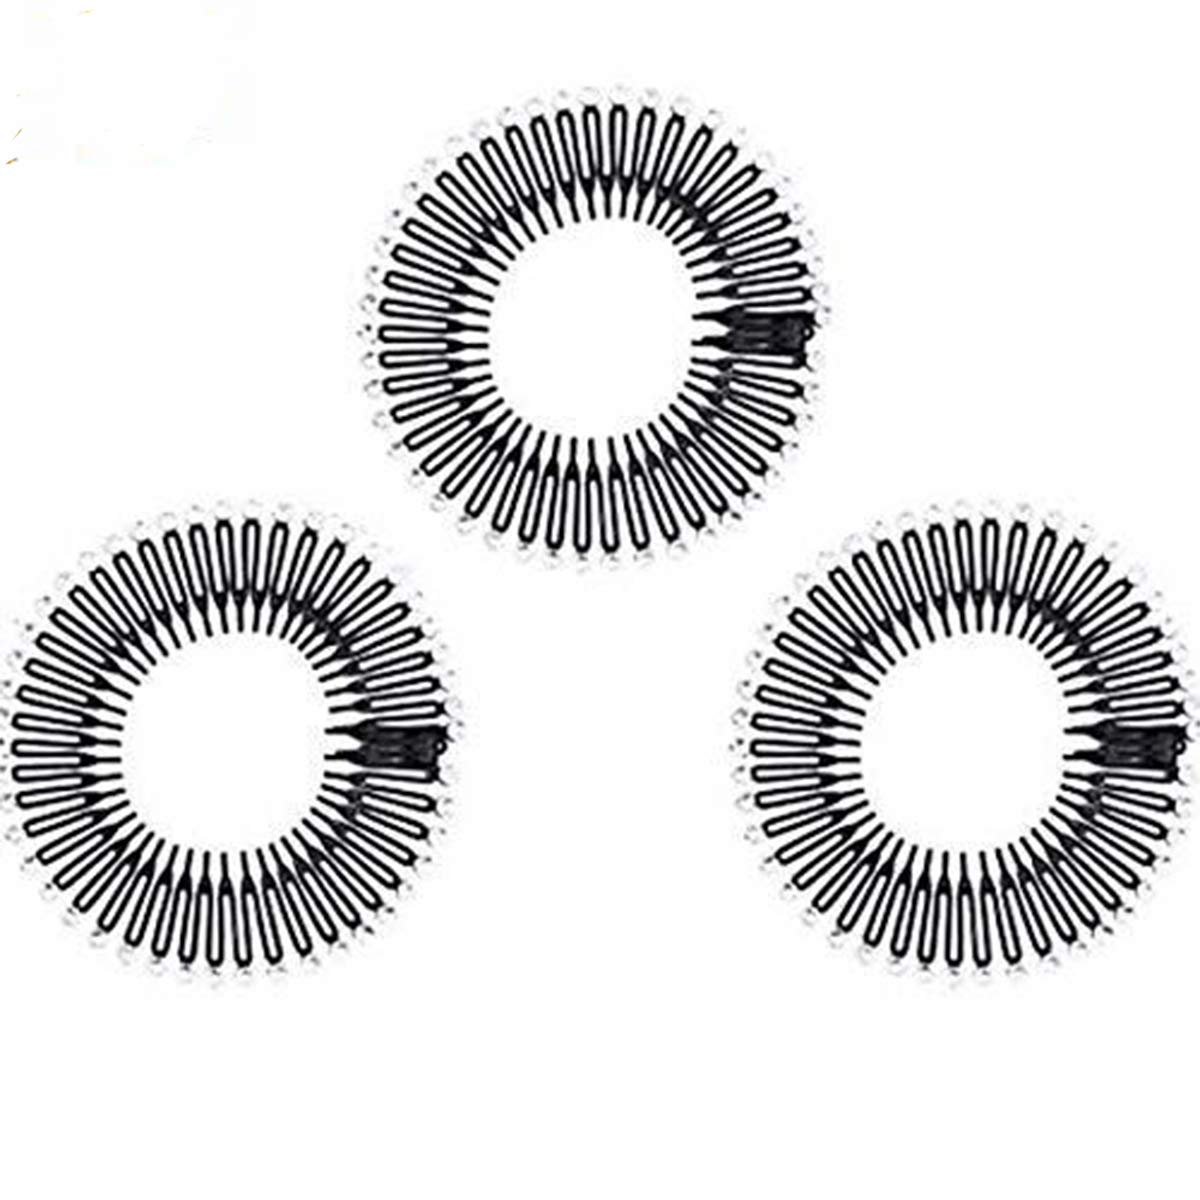 Details about  /Flexible Comb Teeth Headwear Hairband Hair Styling Accessories Womens Girls Comb